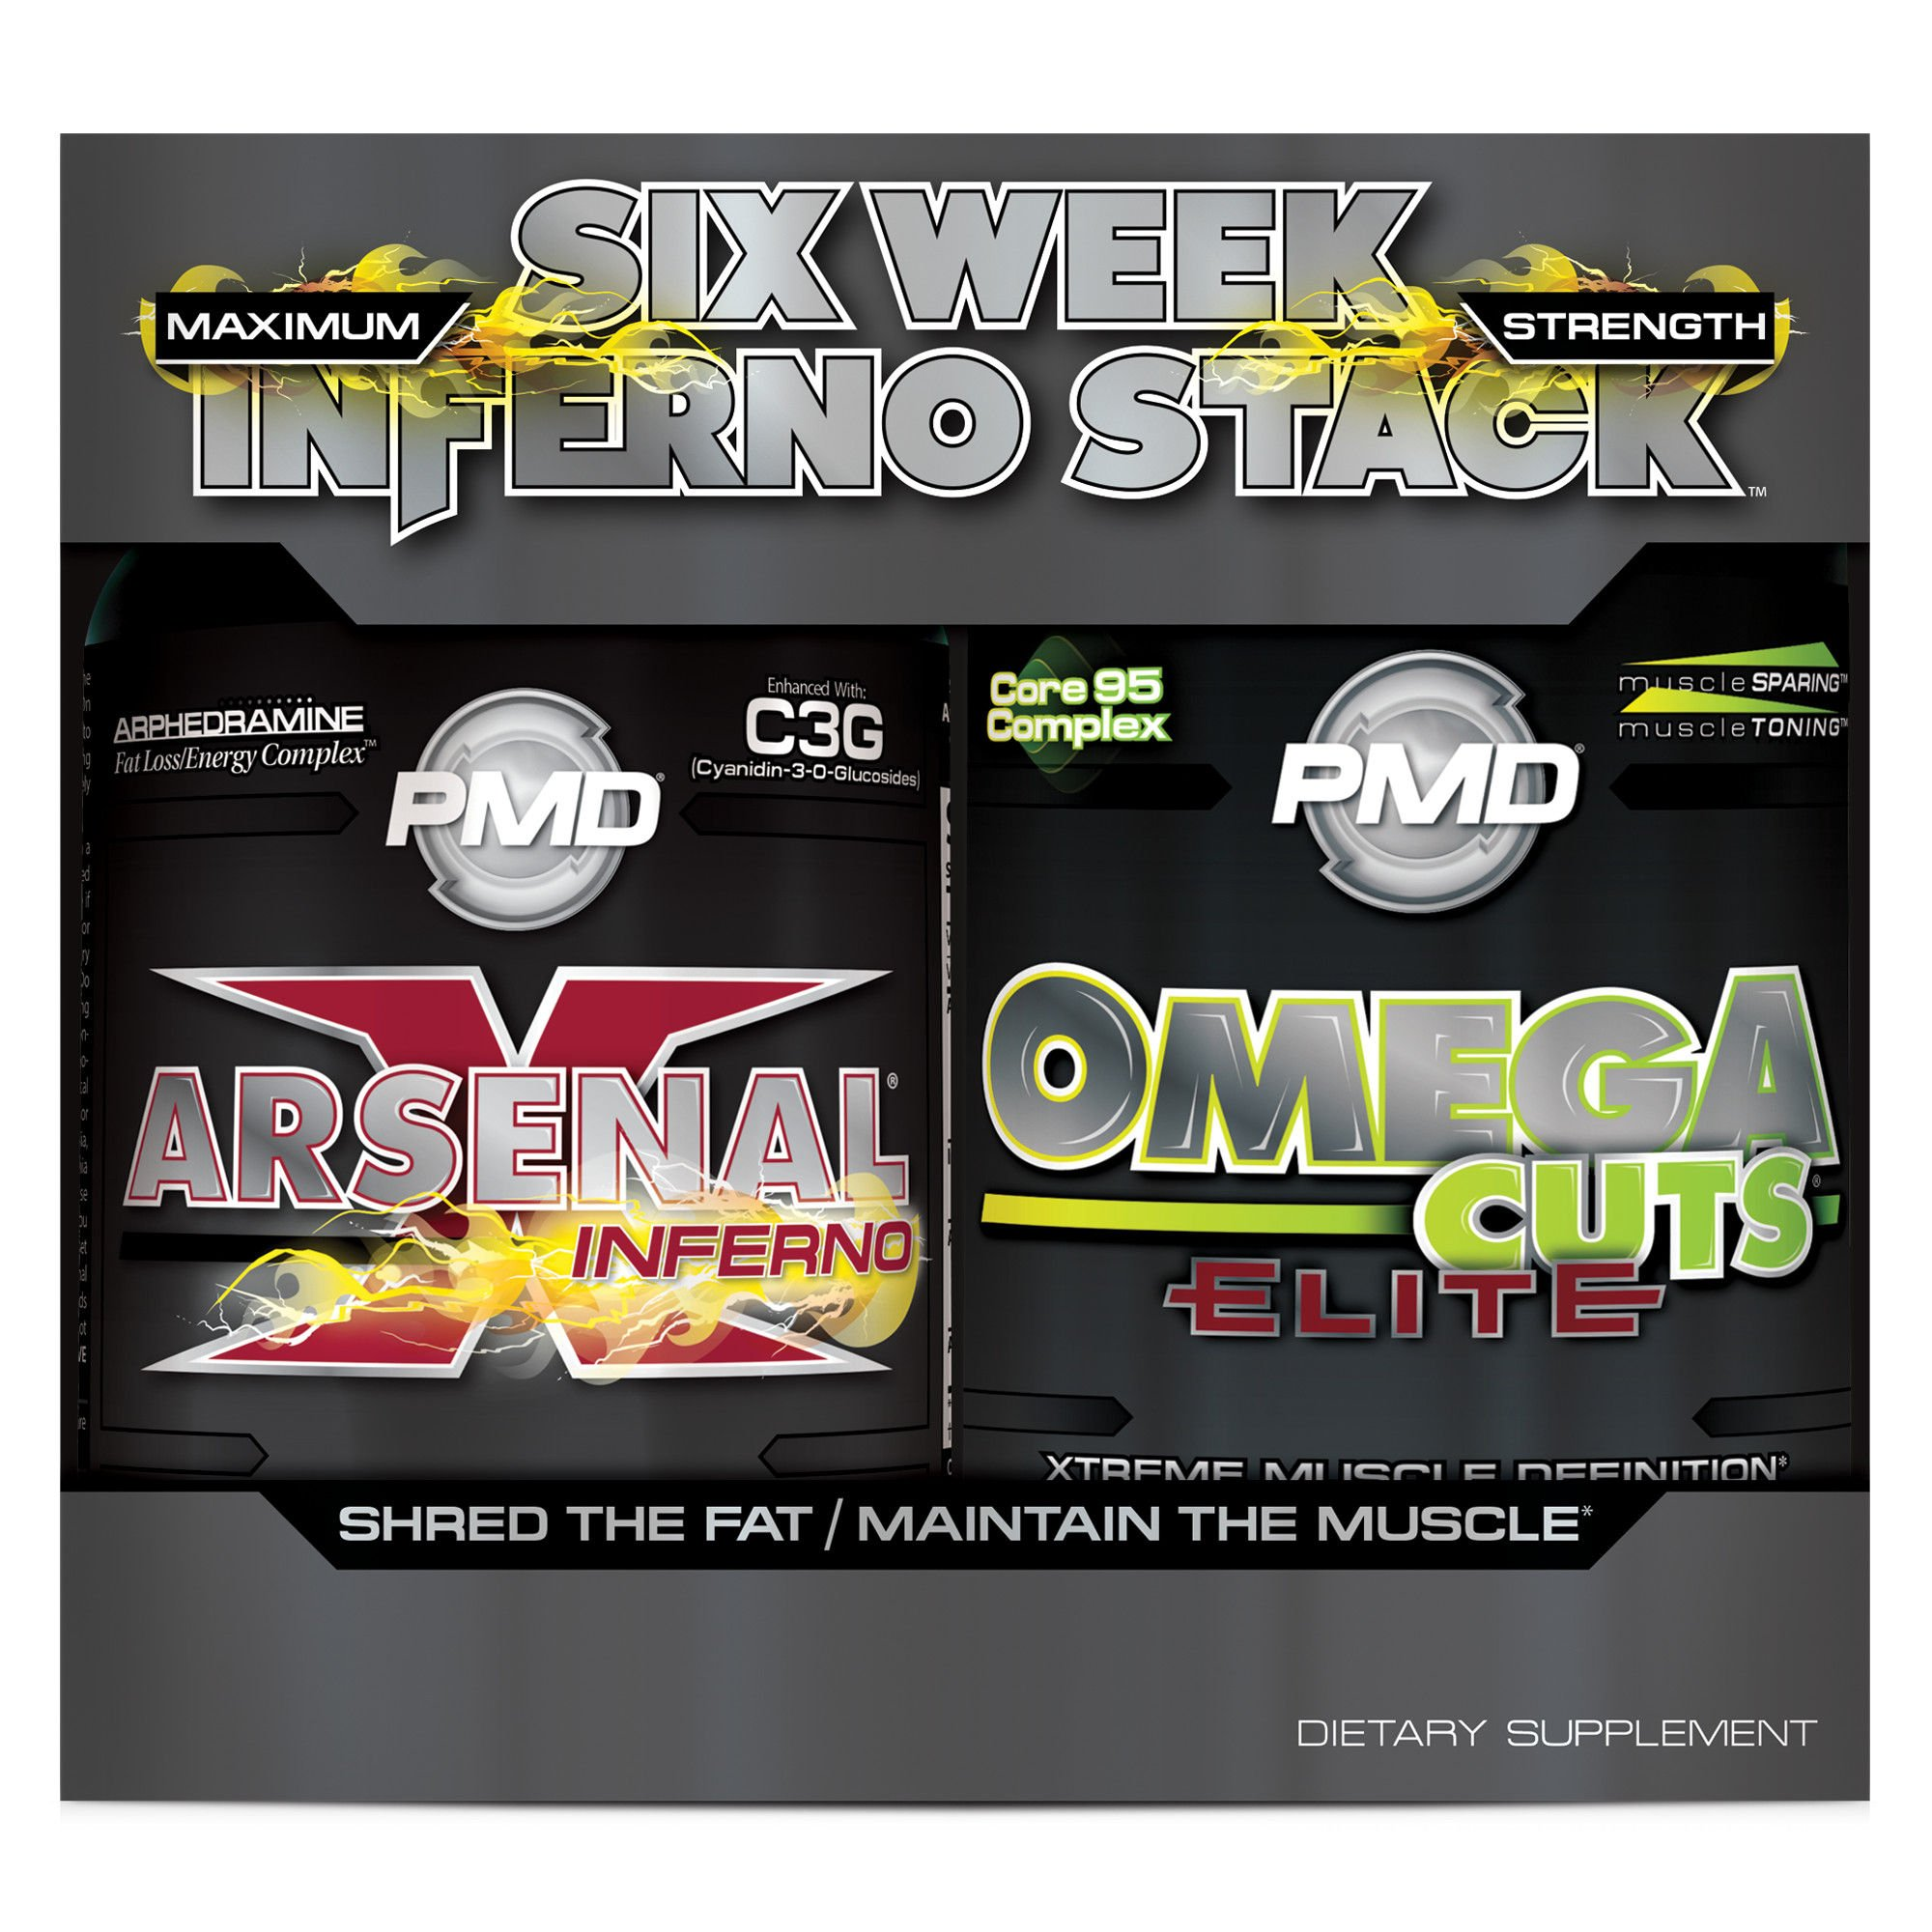 PMD Sports Six Week Inferno Stack - Maximum Strength Fat Burner and CLA Omega Fatty Acid to Lose Fat Fast and Increase Muscle Tone - Arsenal X Inferno/120 Liquid Gels, Omega Cuts Elite/180 Softgels by PMD (Image #1)